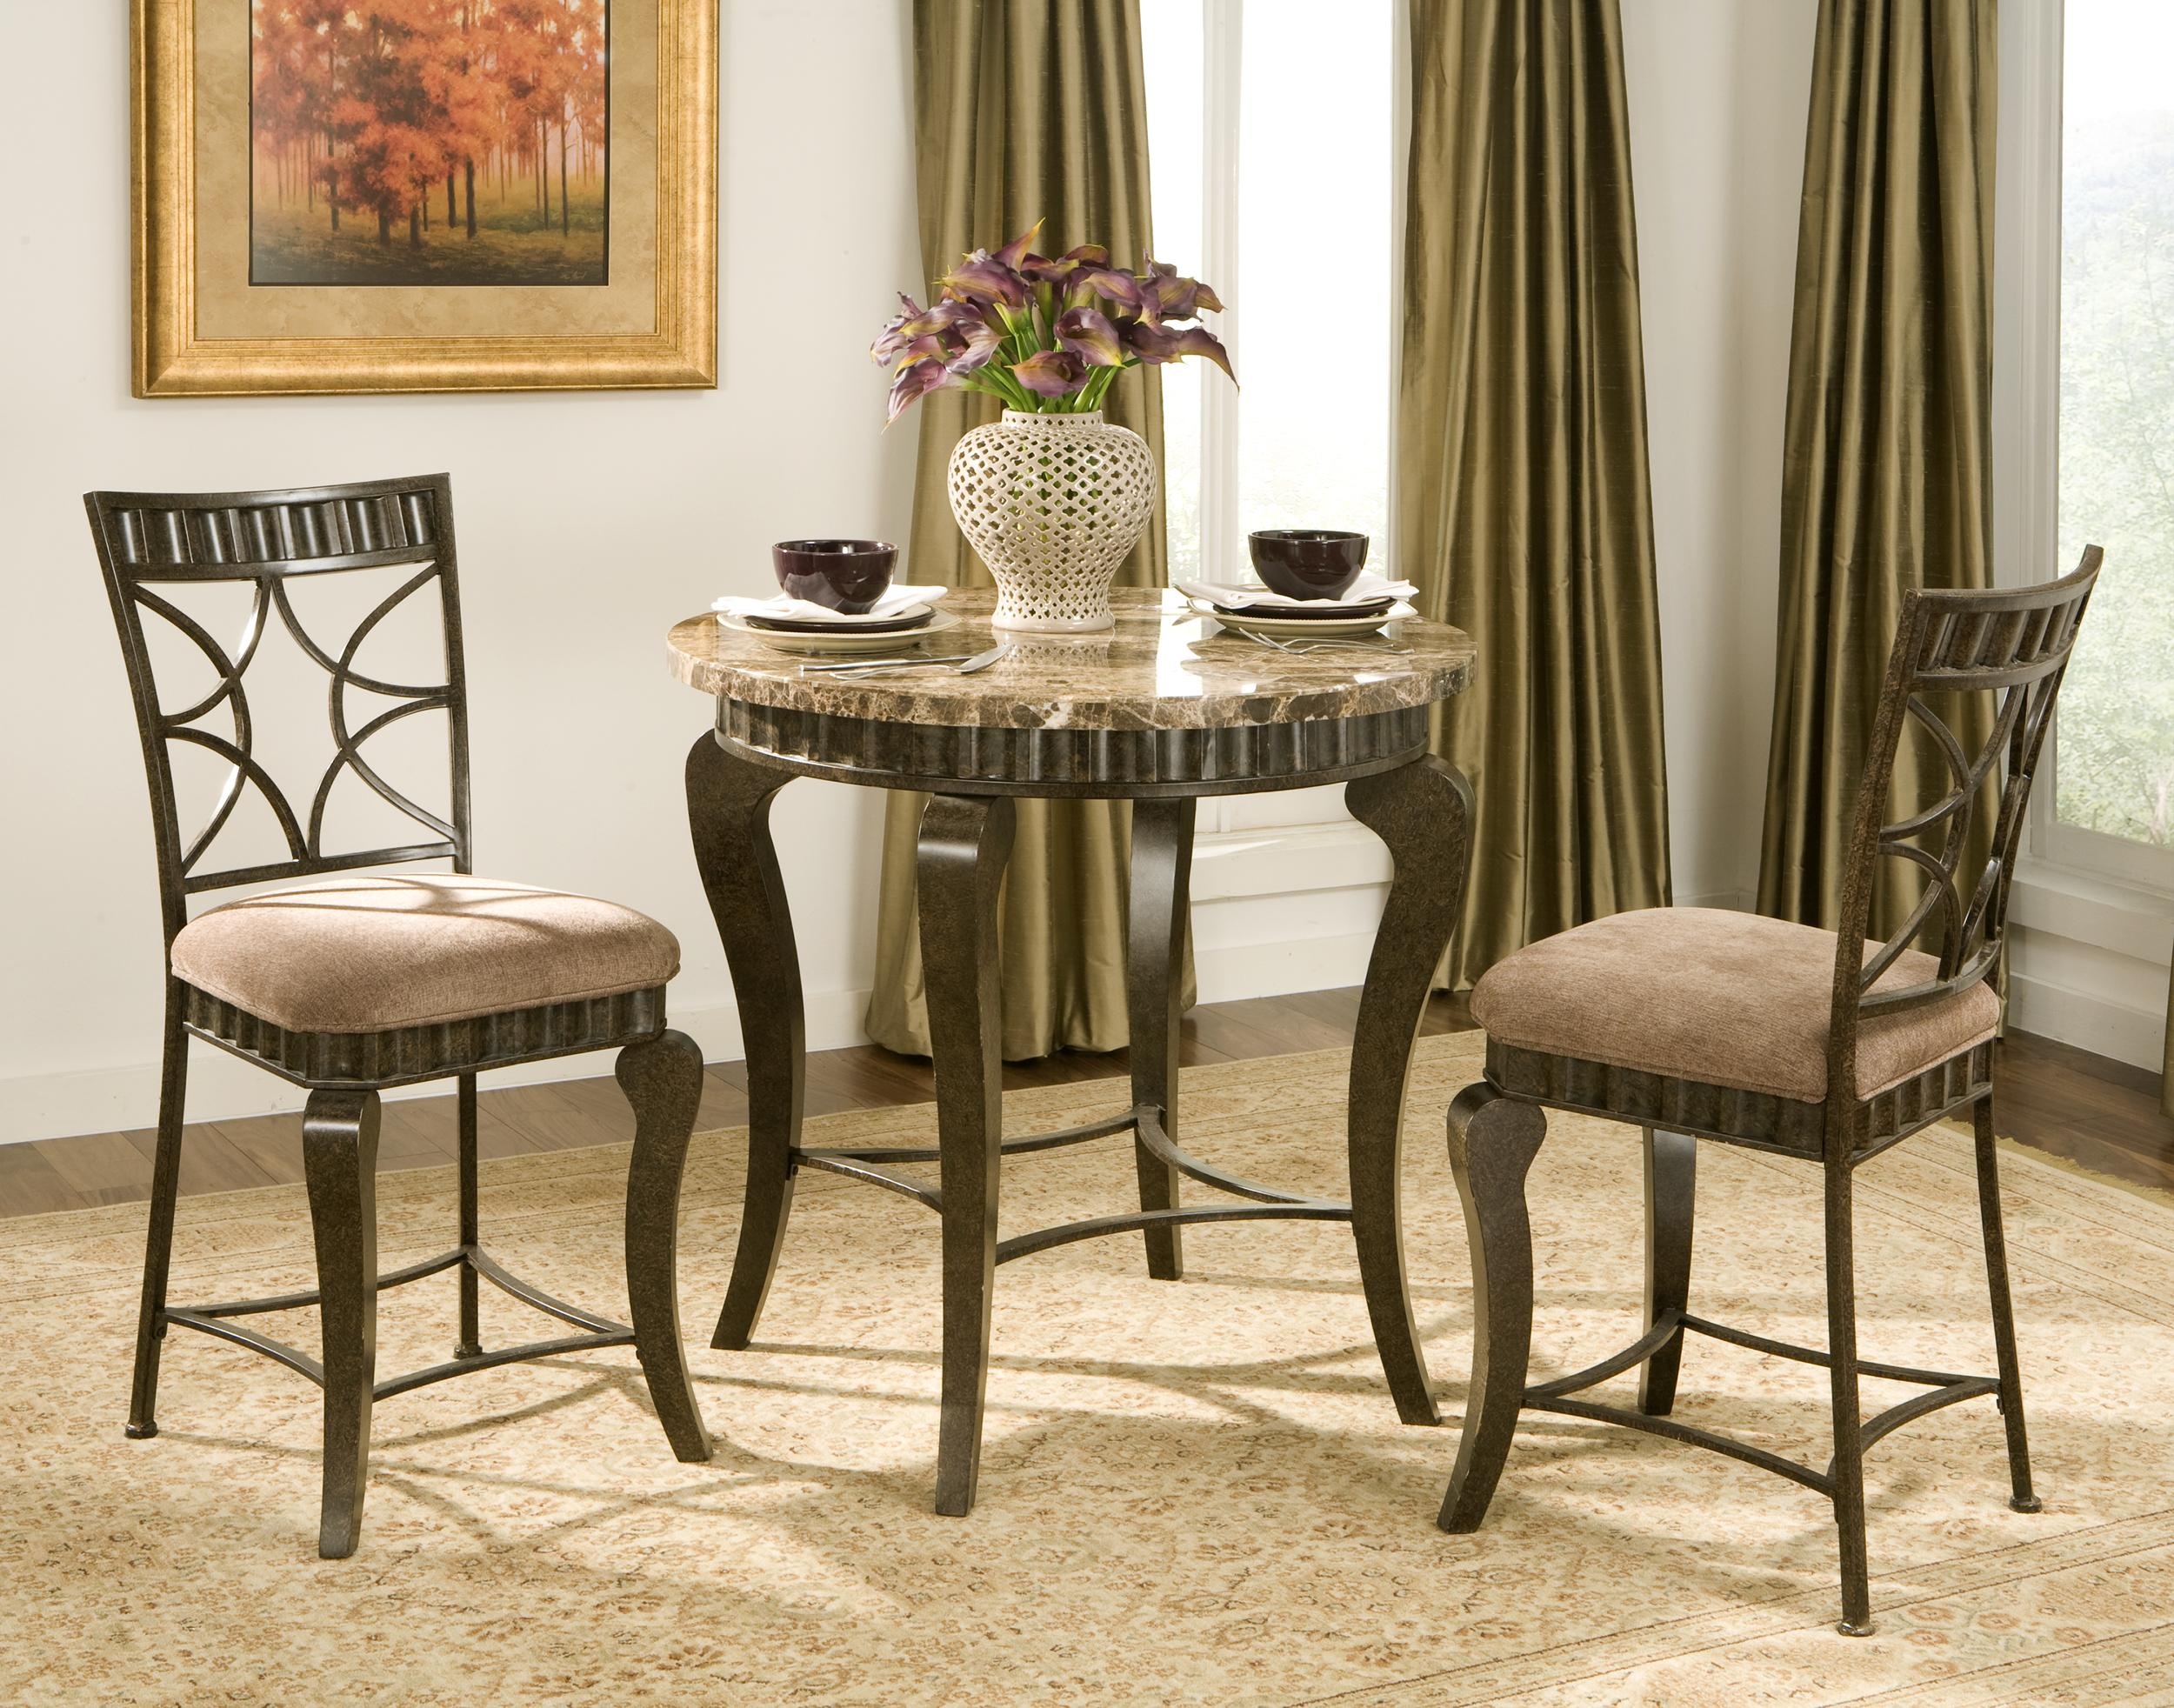 Steve Silver Hamlyn 5 Piece Round Faux Marble Top Metal Dining Table Set | Walker\u0027s Furniture | Dining 5 Piece Set Spokane Kennewick Tri-Cities ... & Steve Silver Hamlyn 5 Piece Round Faux Marble Top Metal Dining Table ...